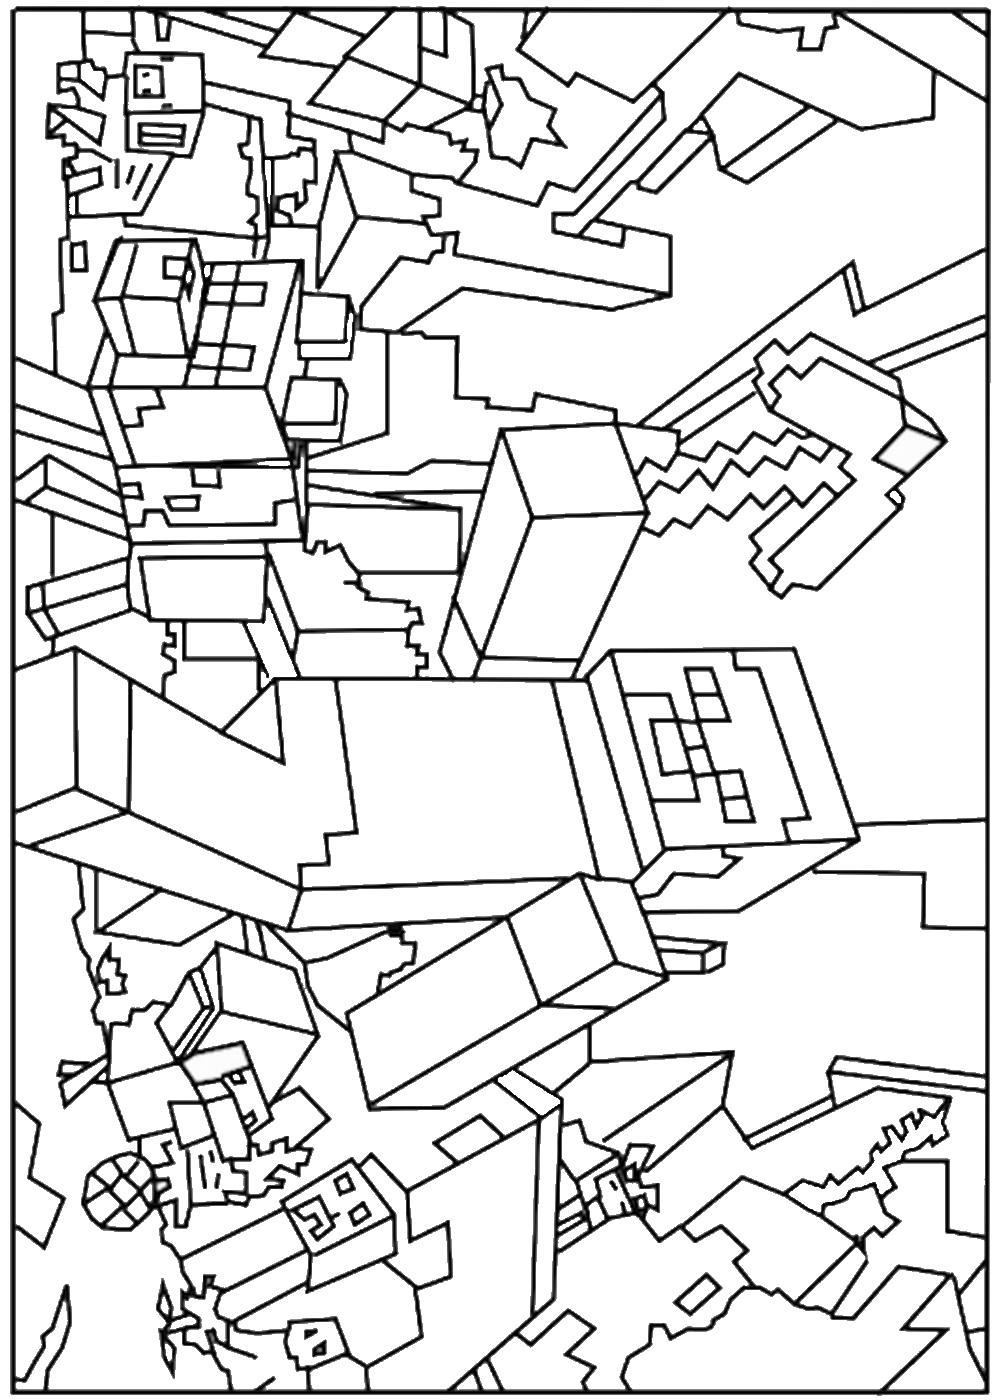 minecraft colouring pages free minecraft free to color for children minecraft kids colouring free pages minecraft